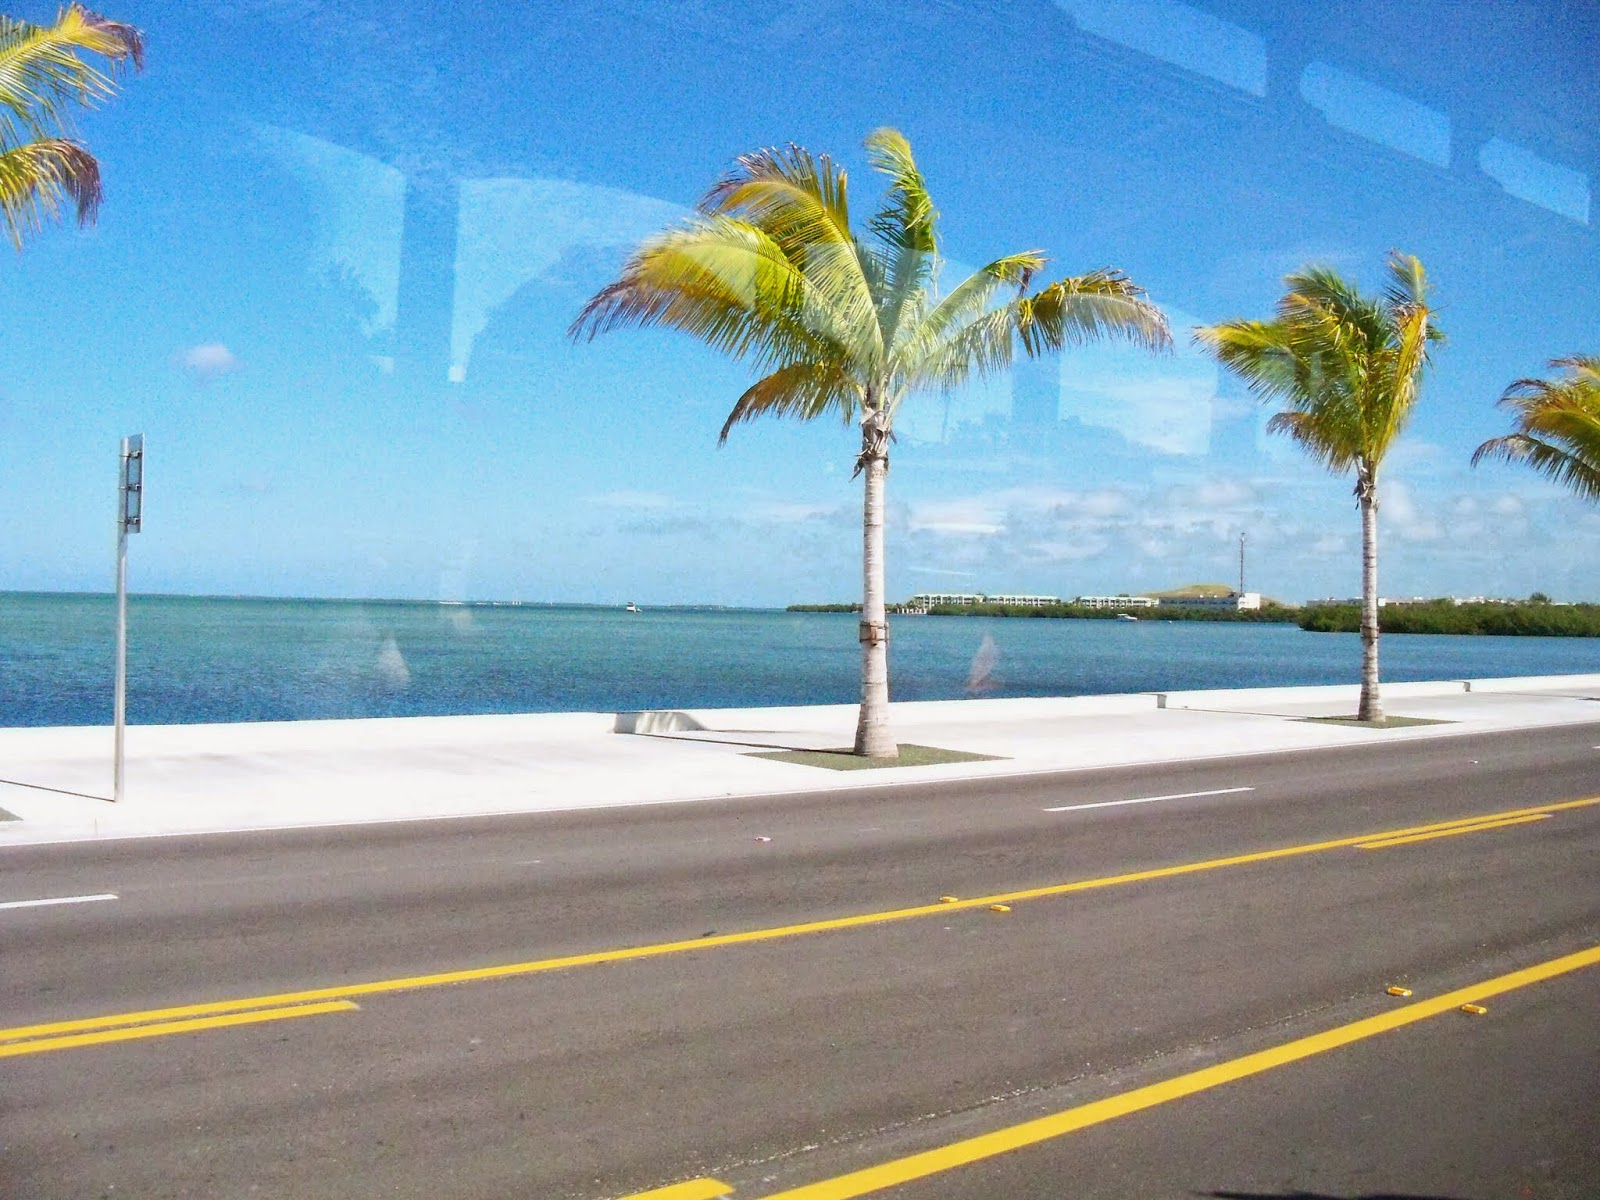 Key West Vacation - 116_5777.JPG